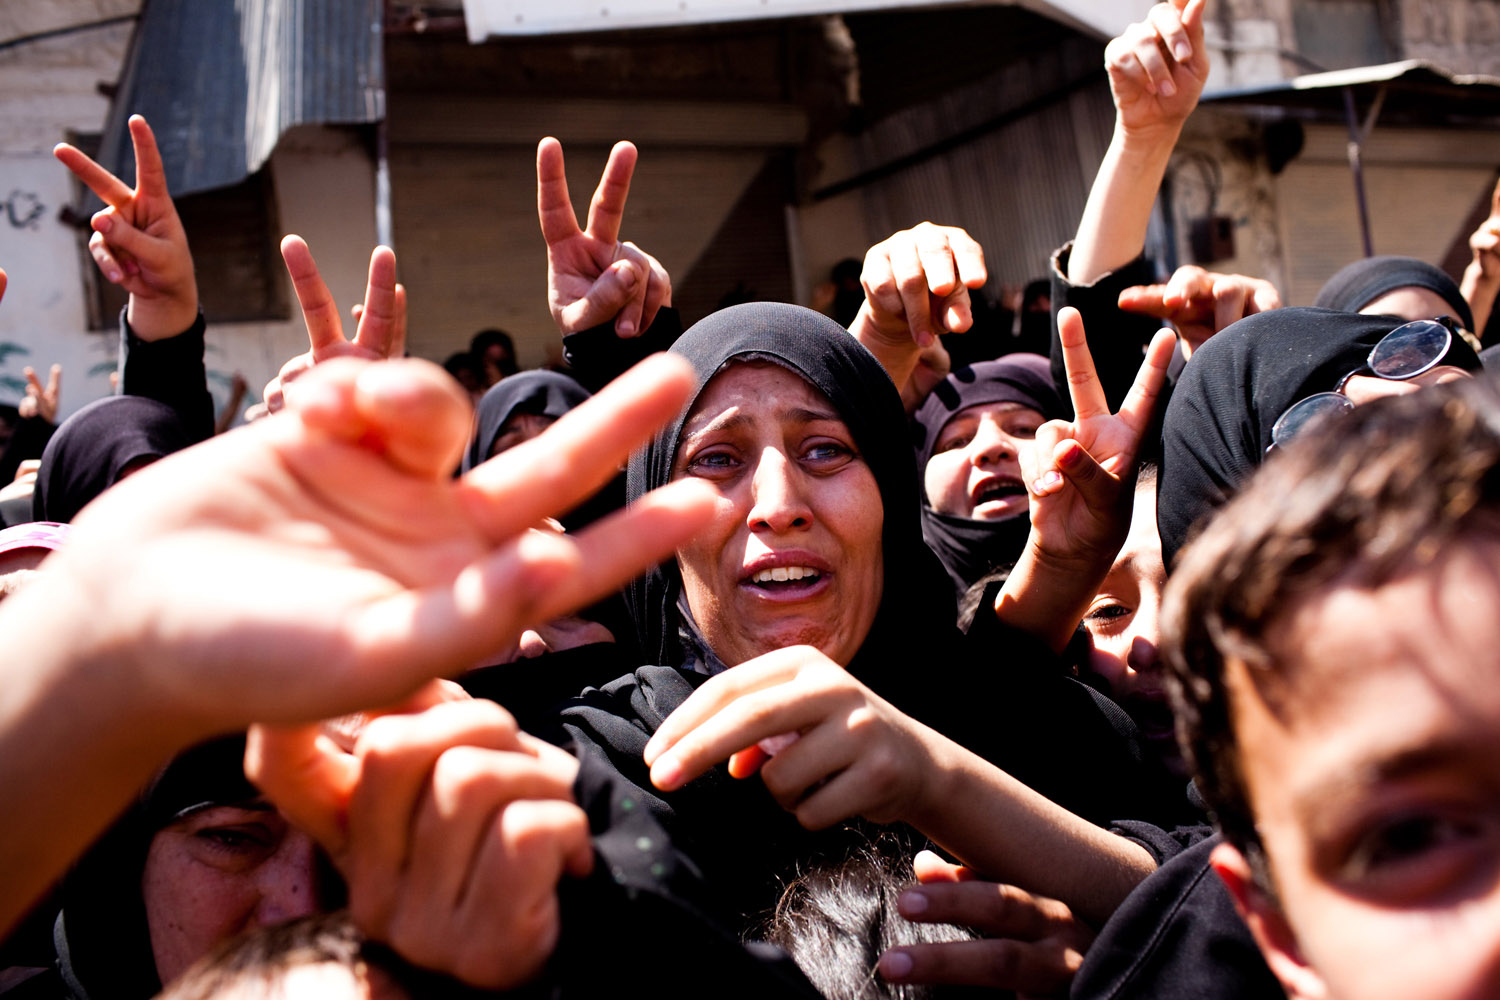 Women, including the mothers and sisters of those killed, cry during demonstrations that took place after many civilians were killed the night before by mortars fired on the city of Maarat Al Noman by the Syrian Army on June 10, 2012.